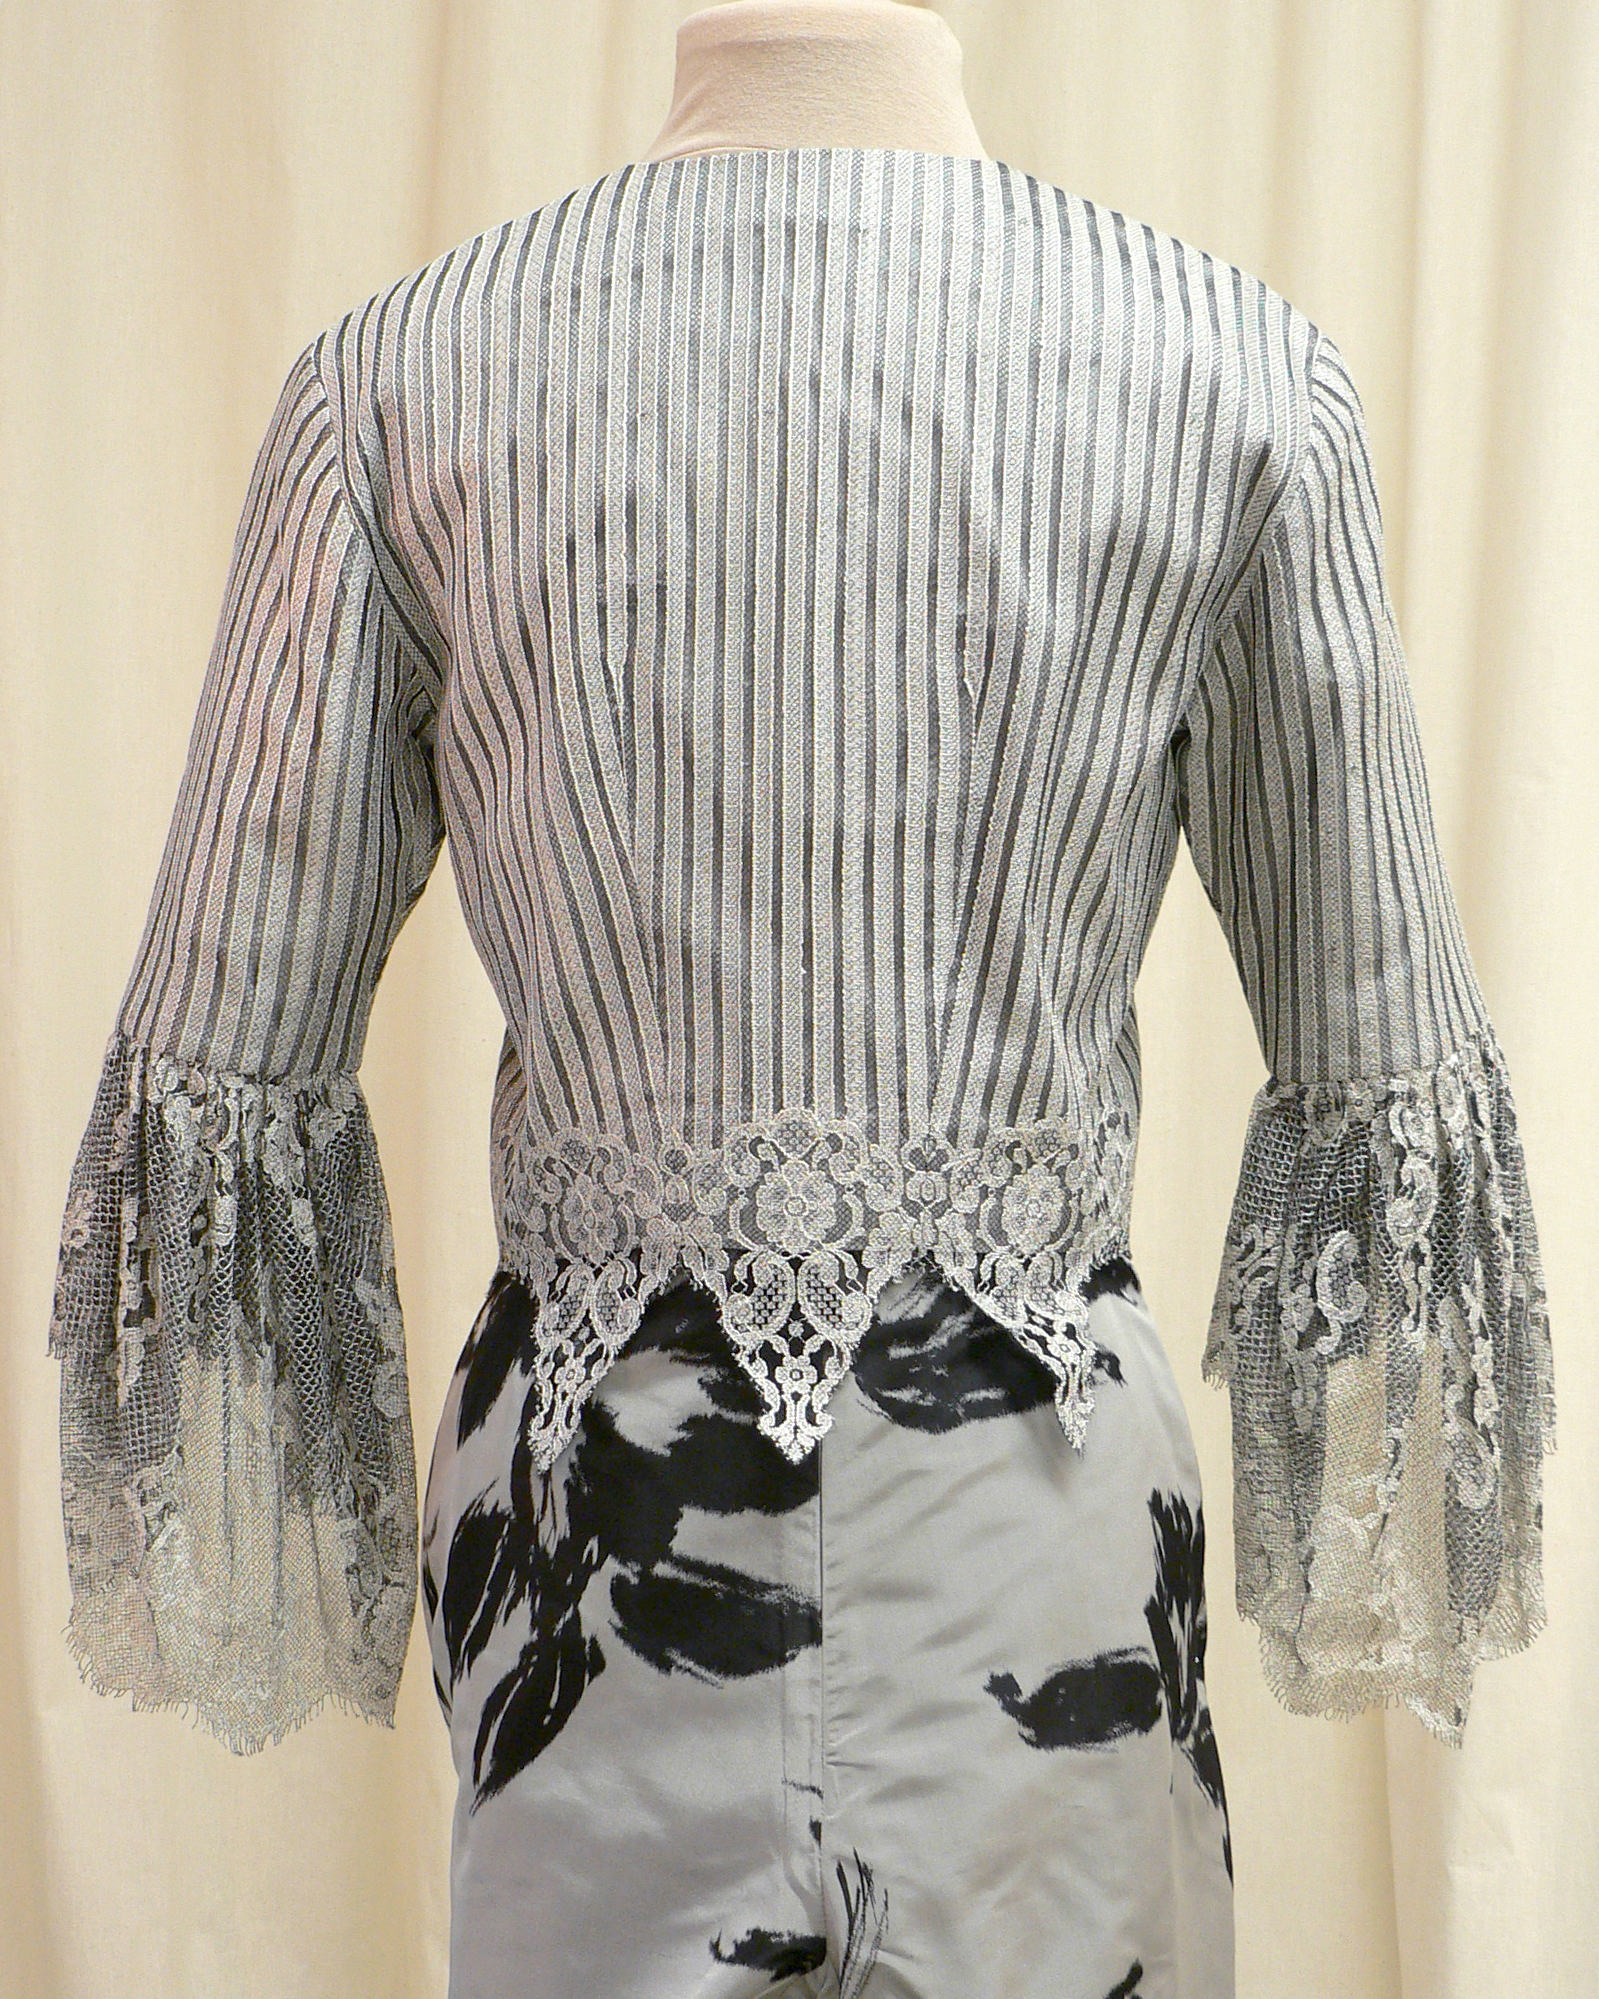 ensemble02_back_detail.jpg